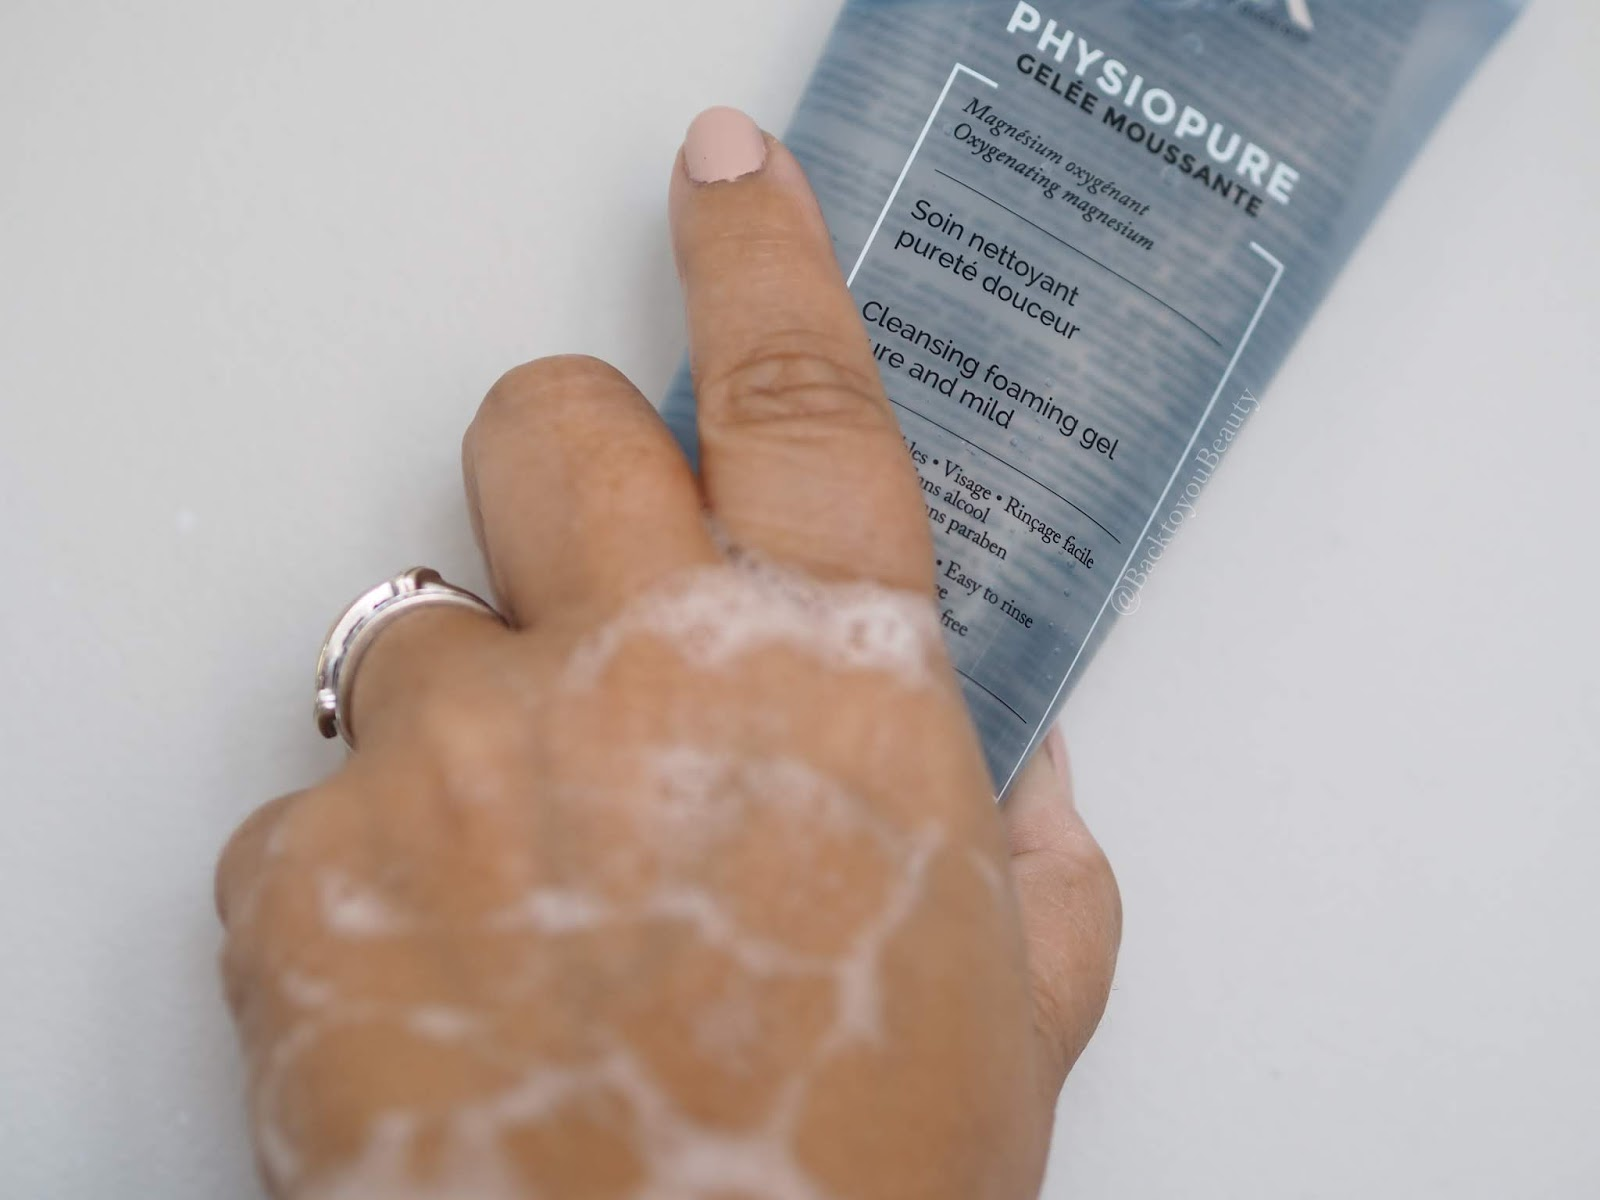 SVR Laboratoire Dermatolique Cleansing Foaming Gel